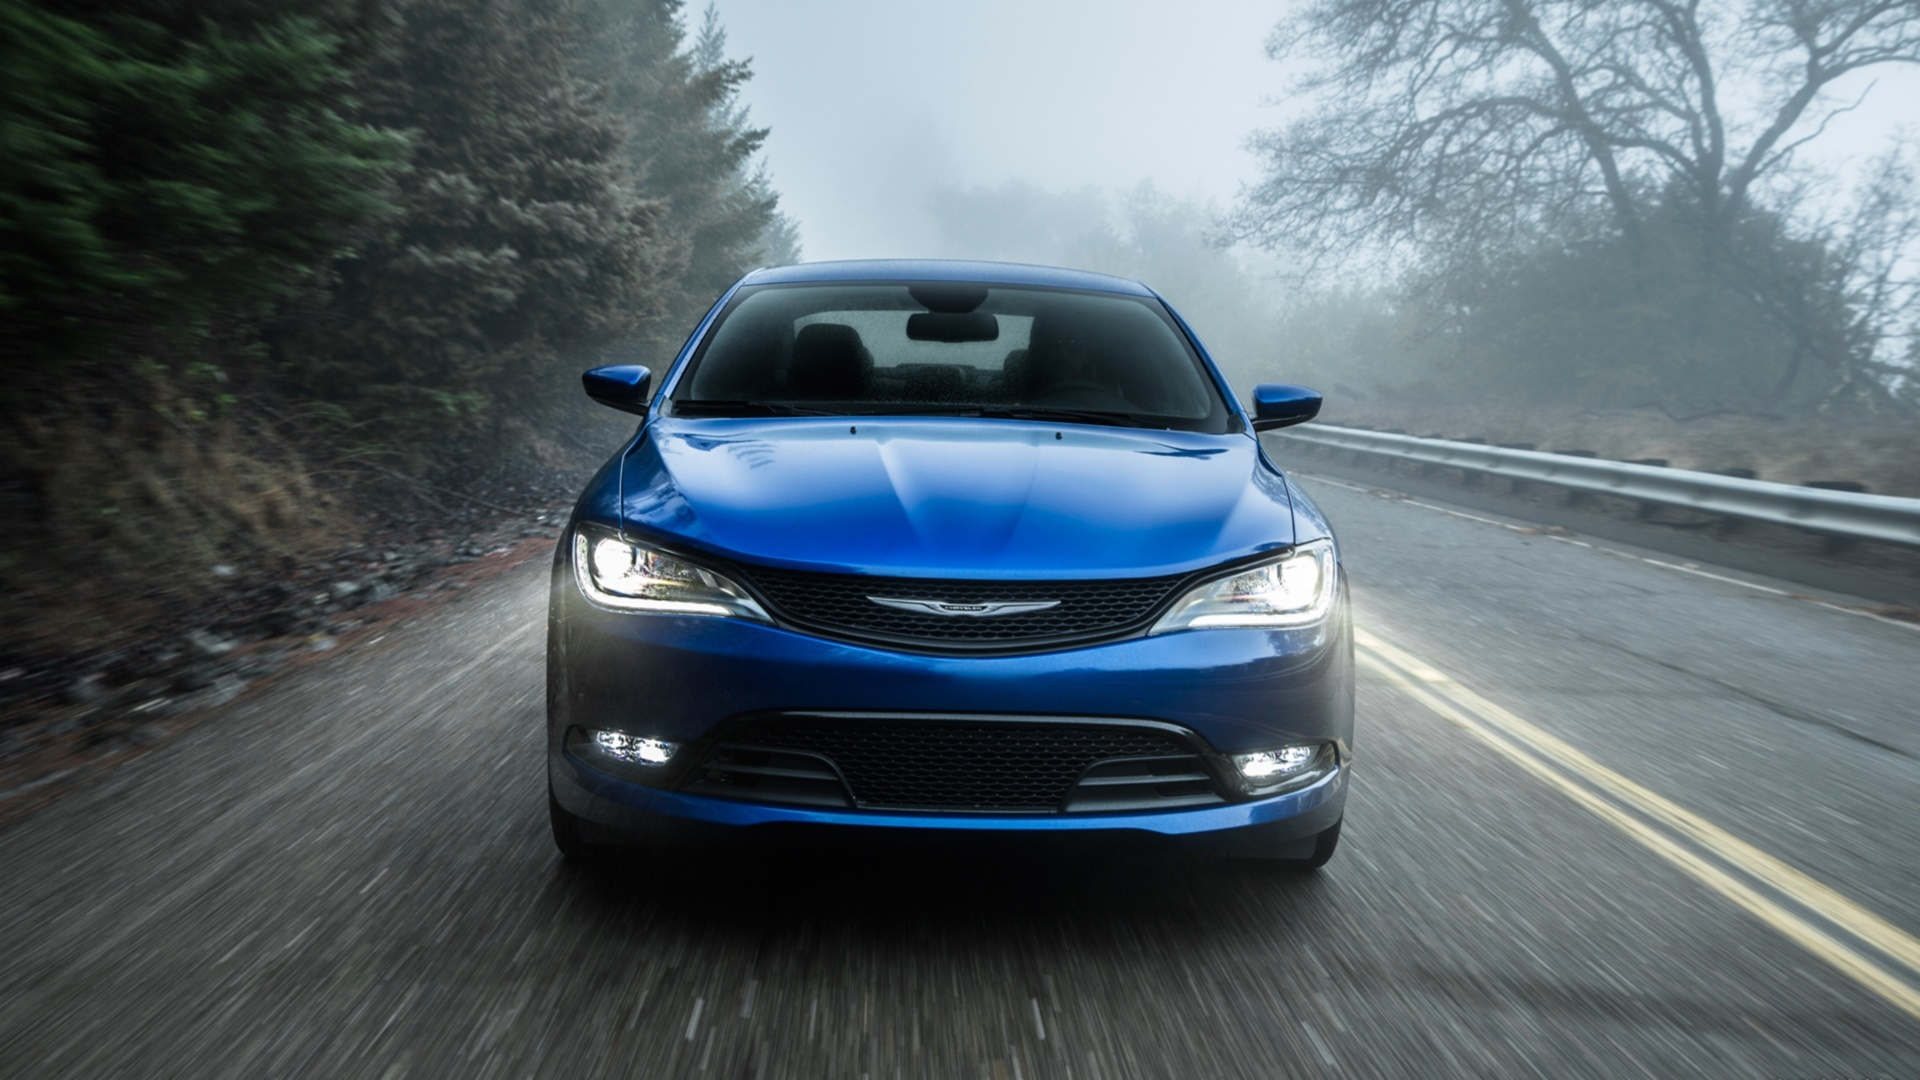 2015 Chrysler 200 Wallpaper 51401 1920x1080